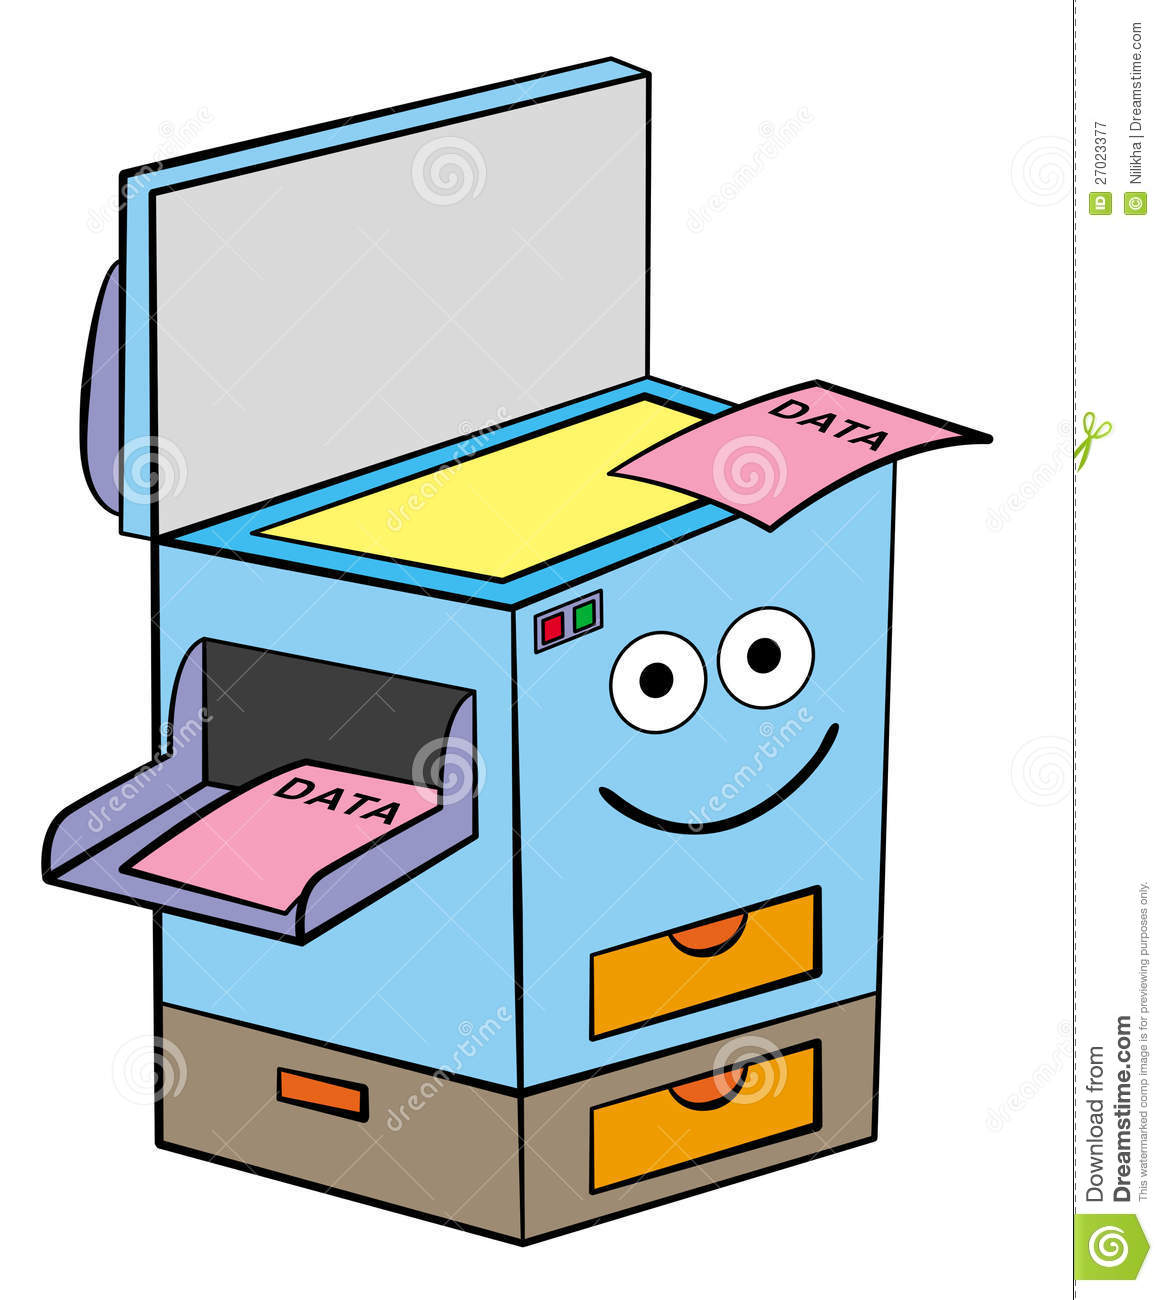 Photostat machine clipart picture royalty free Photocopying Money Uk Clipart Islamabad Stock Exchange Jobs ... picture royalty free